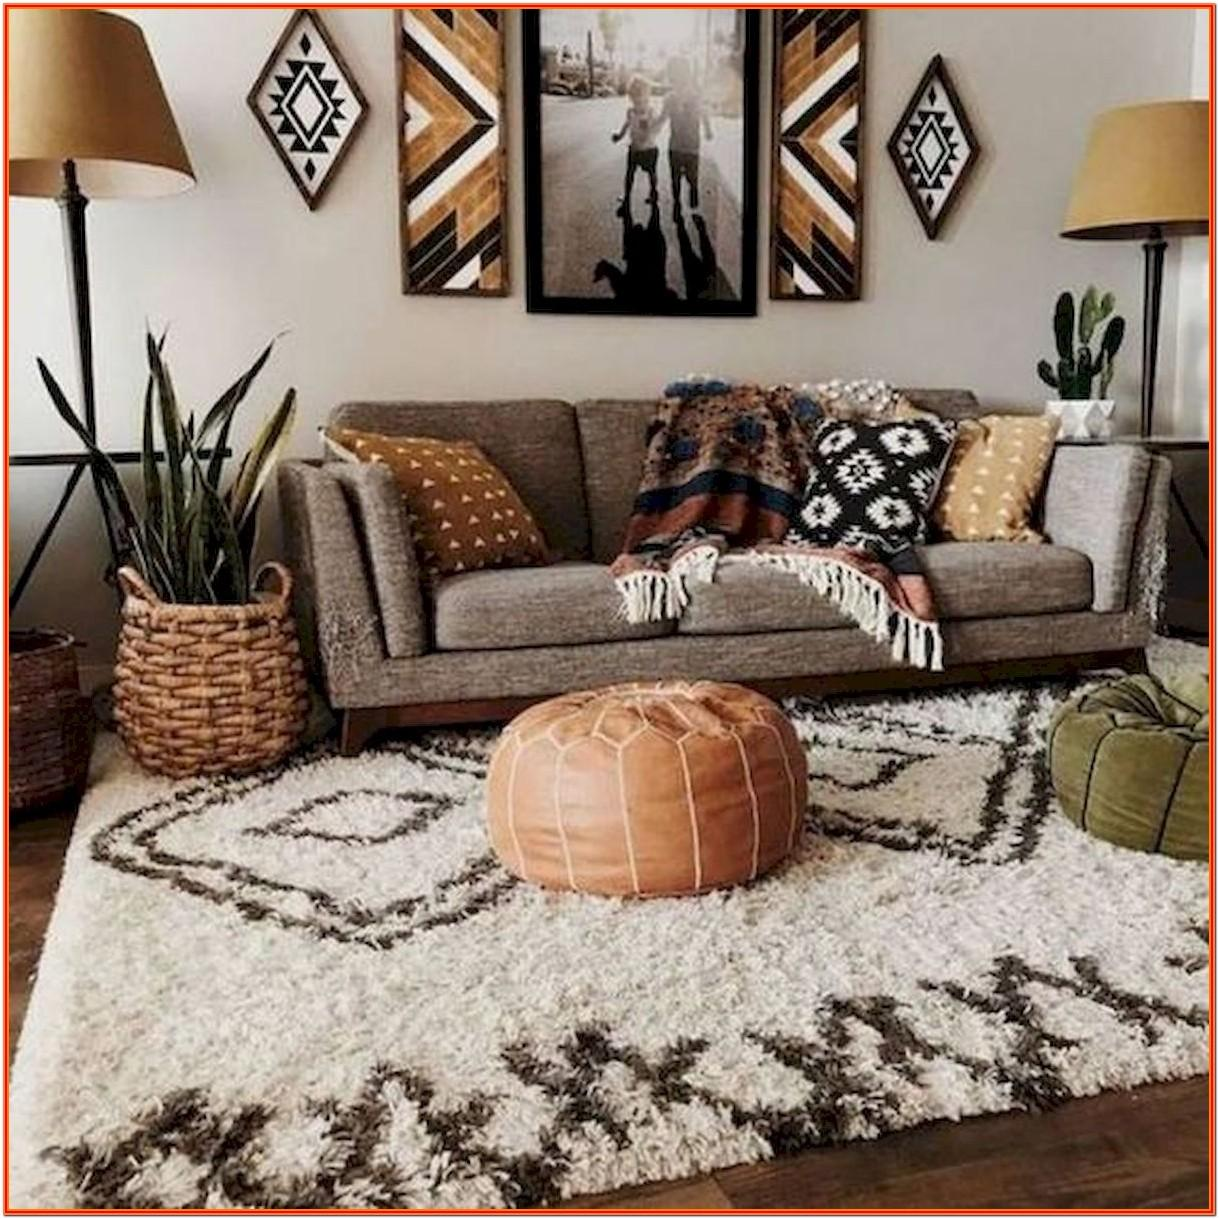 Decor Idea For Small Living Room